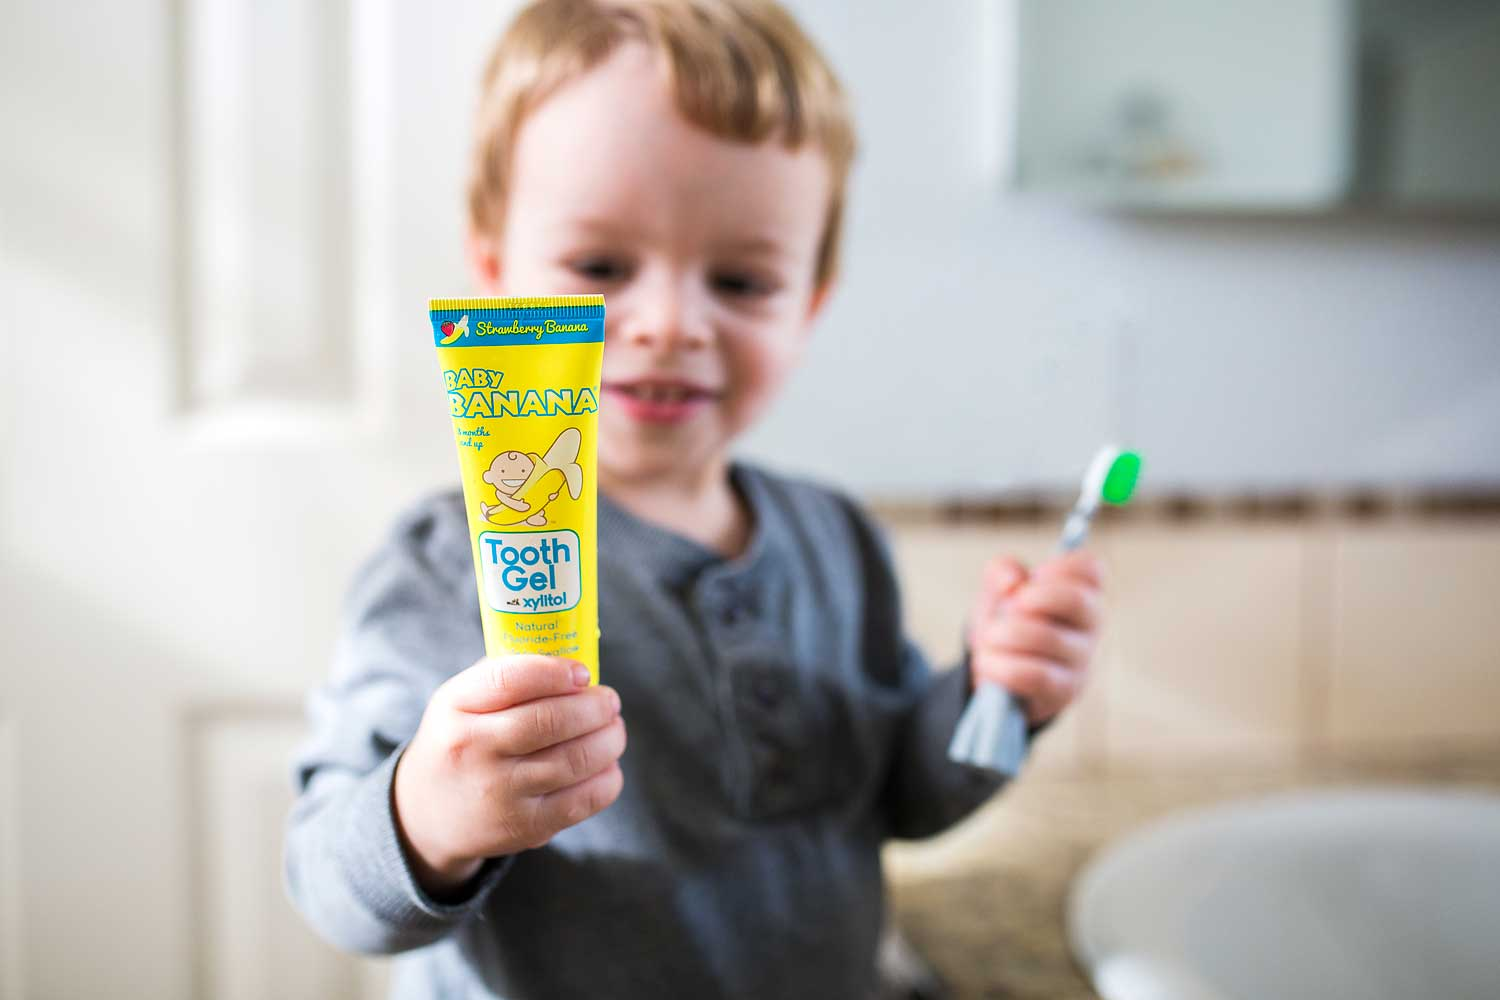 Baby Banana Brush Tooth Gel, Roseville Commercial Photographer, Amy Wright Photography